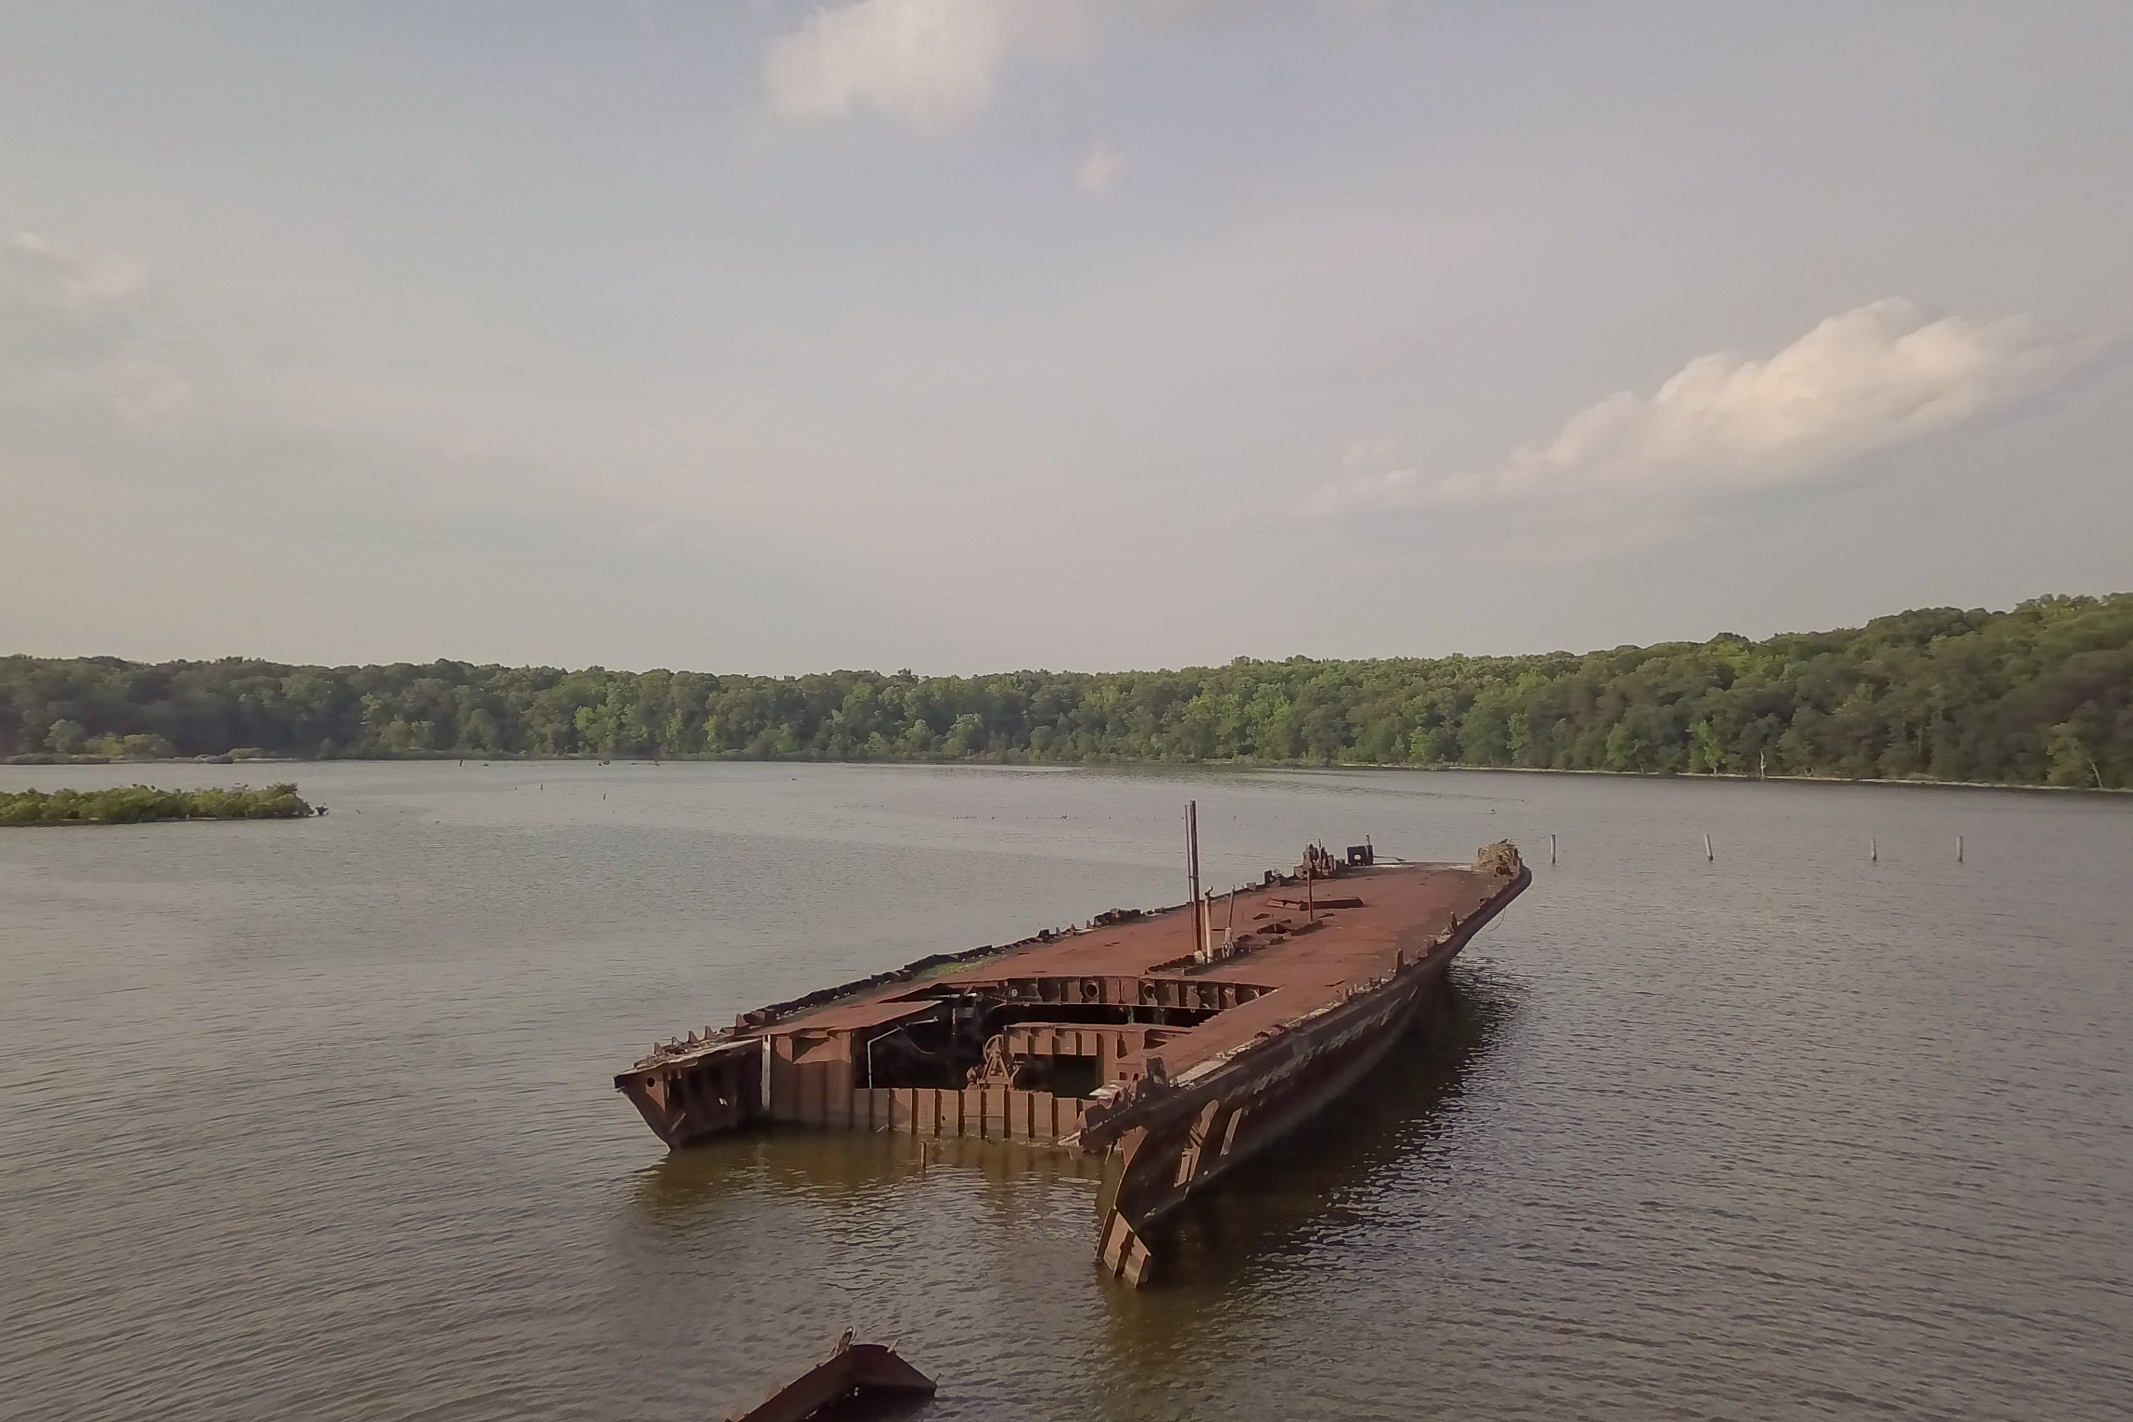 One of Many Sunken Ships in Mallows Bay